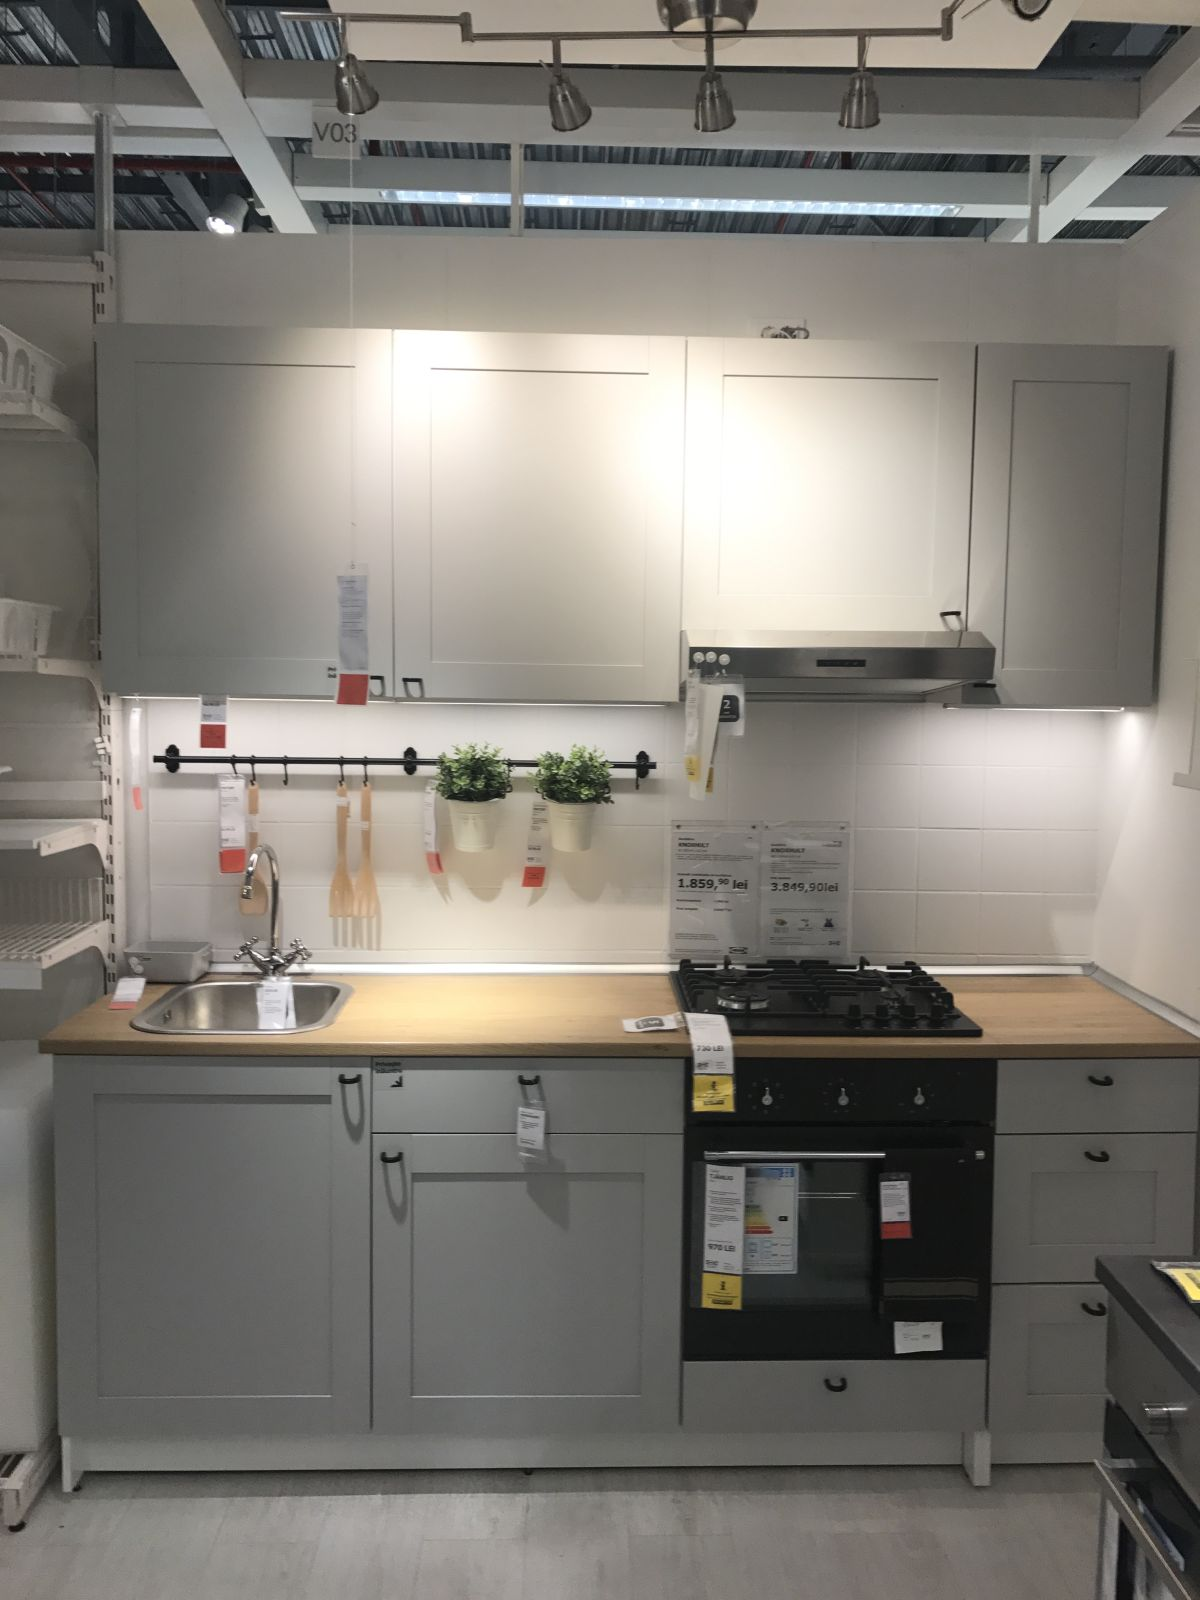 Basic IKEA Kitchen Designs Are The Easiest To Install As A DIY Project.